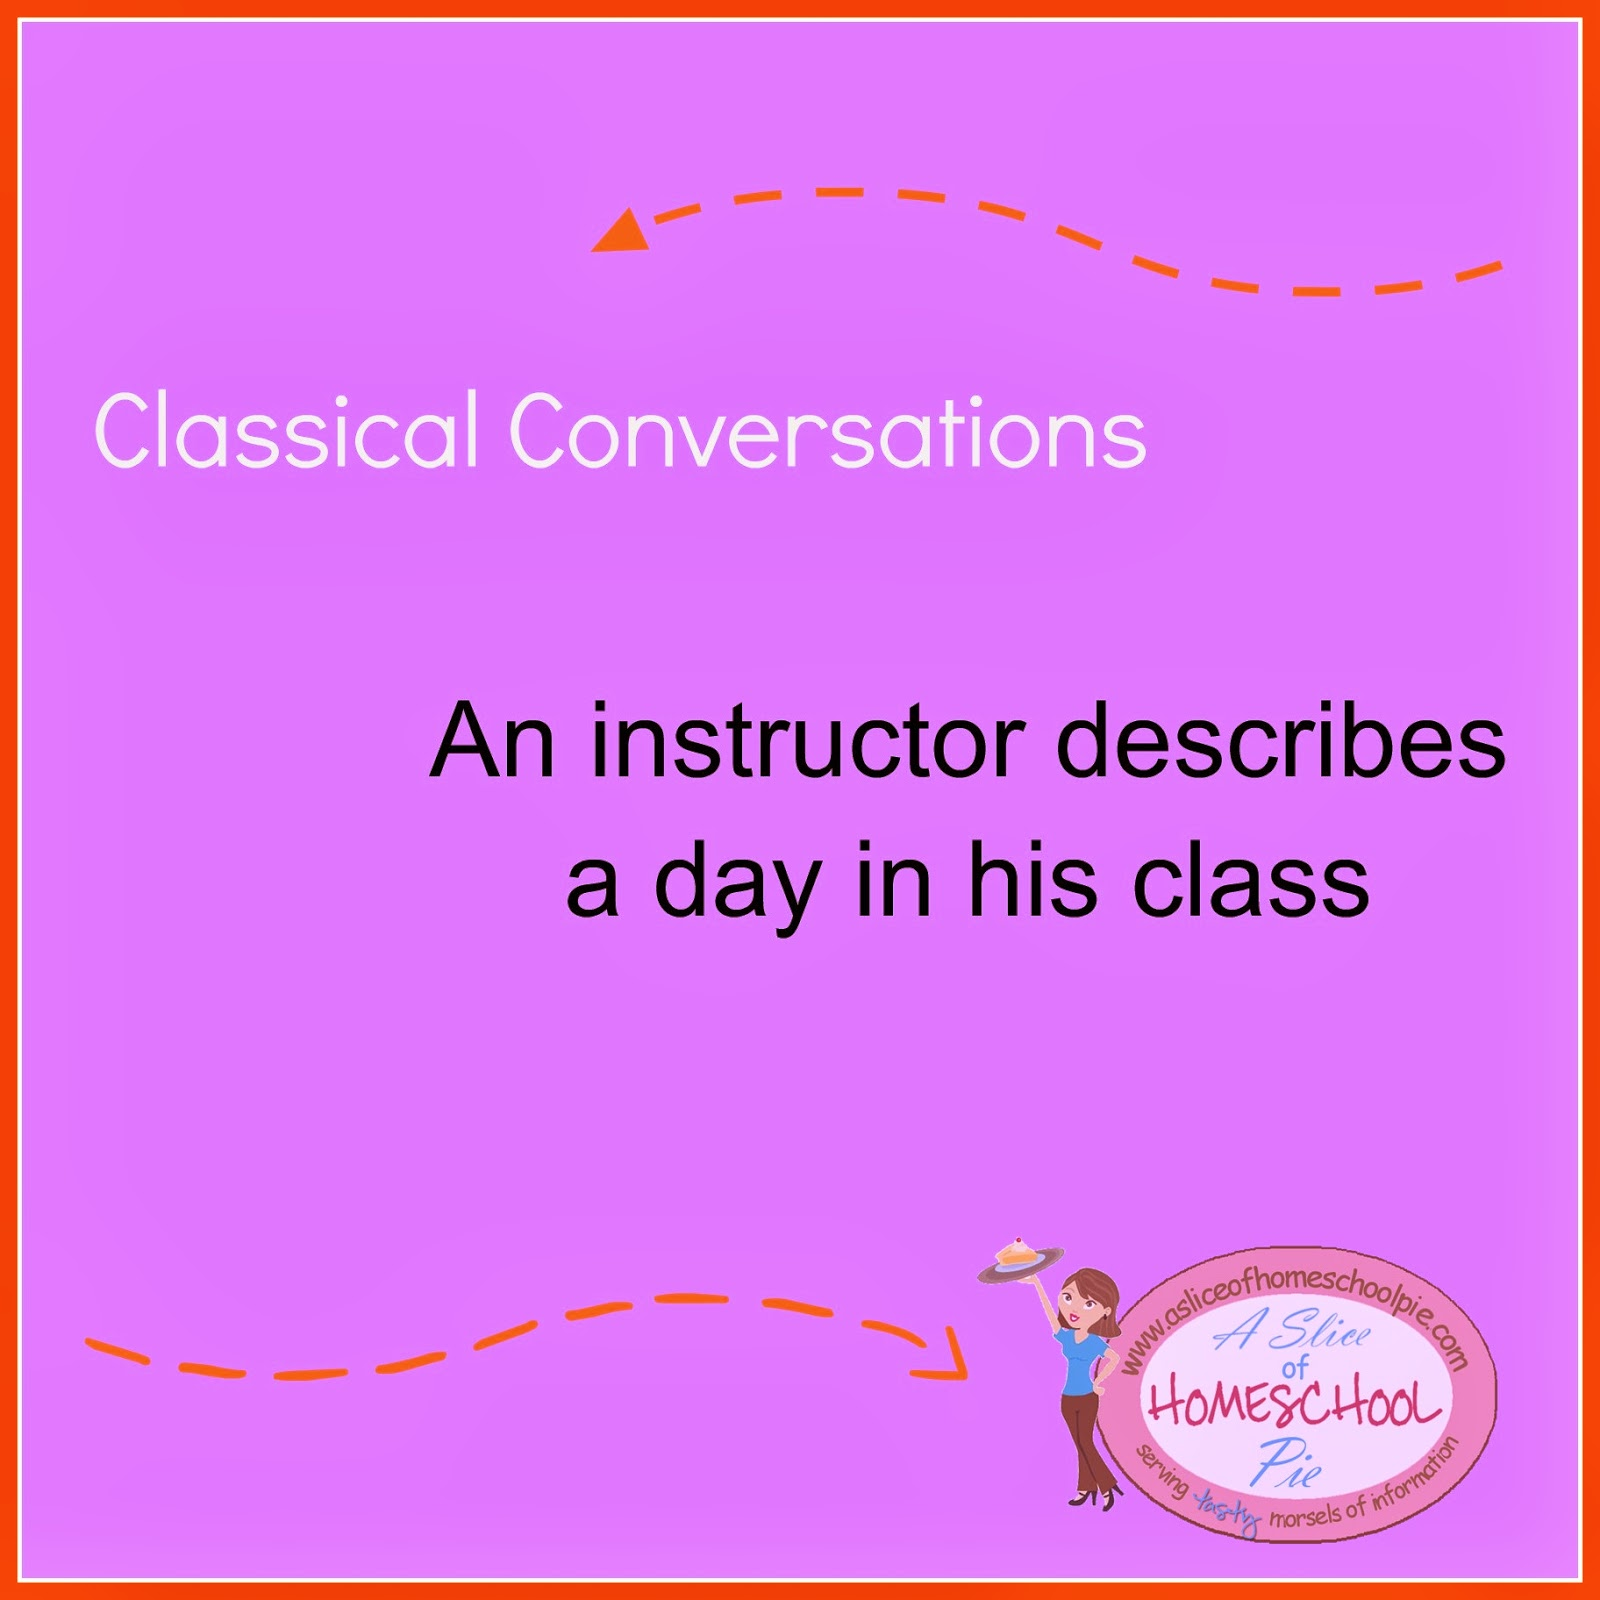 Classical Conversations - An Instructor Describes a Day in His Class #classicalconversations #homeschool